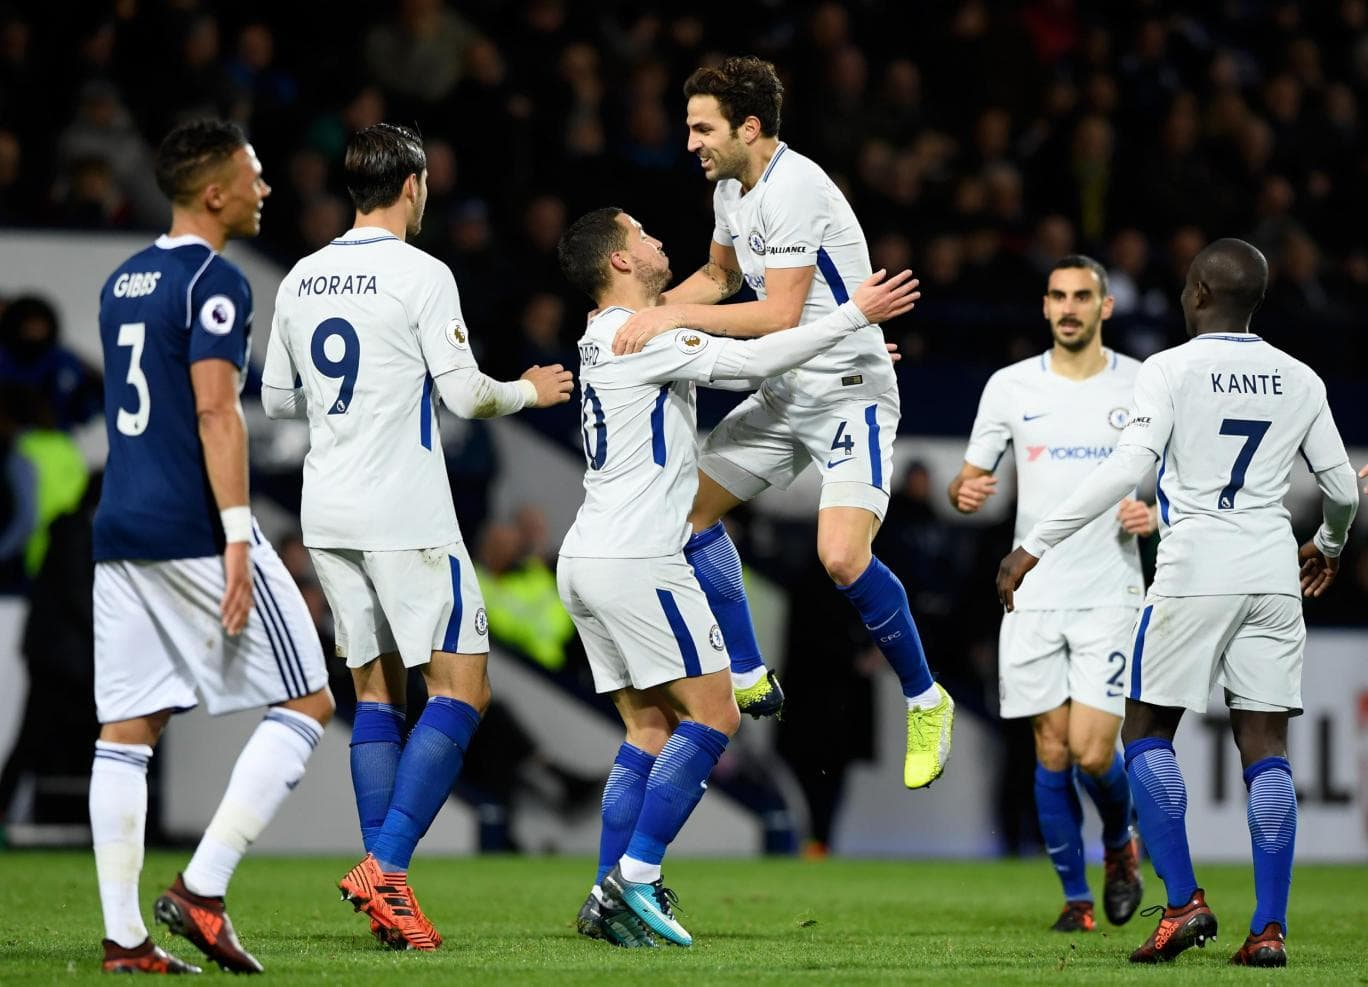 Chelsea - West Brom soccer prediction